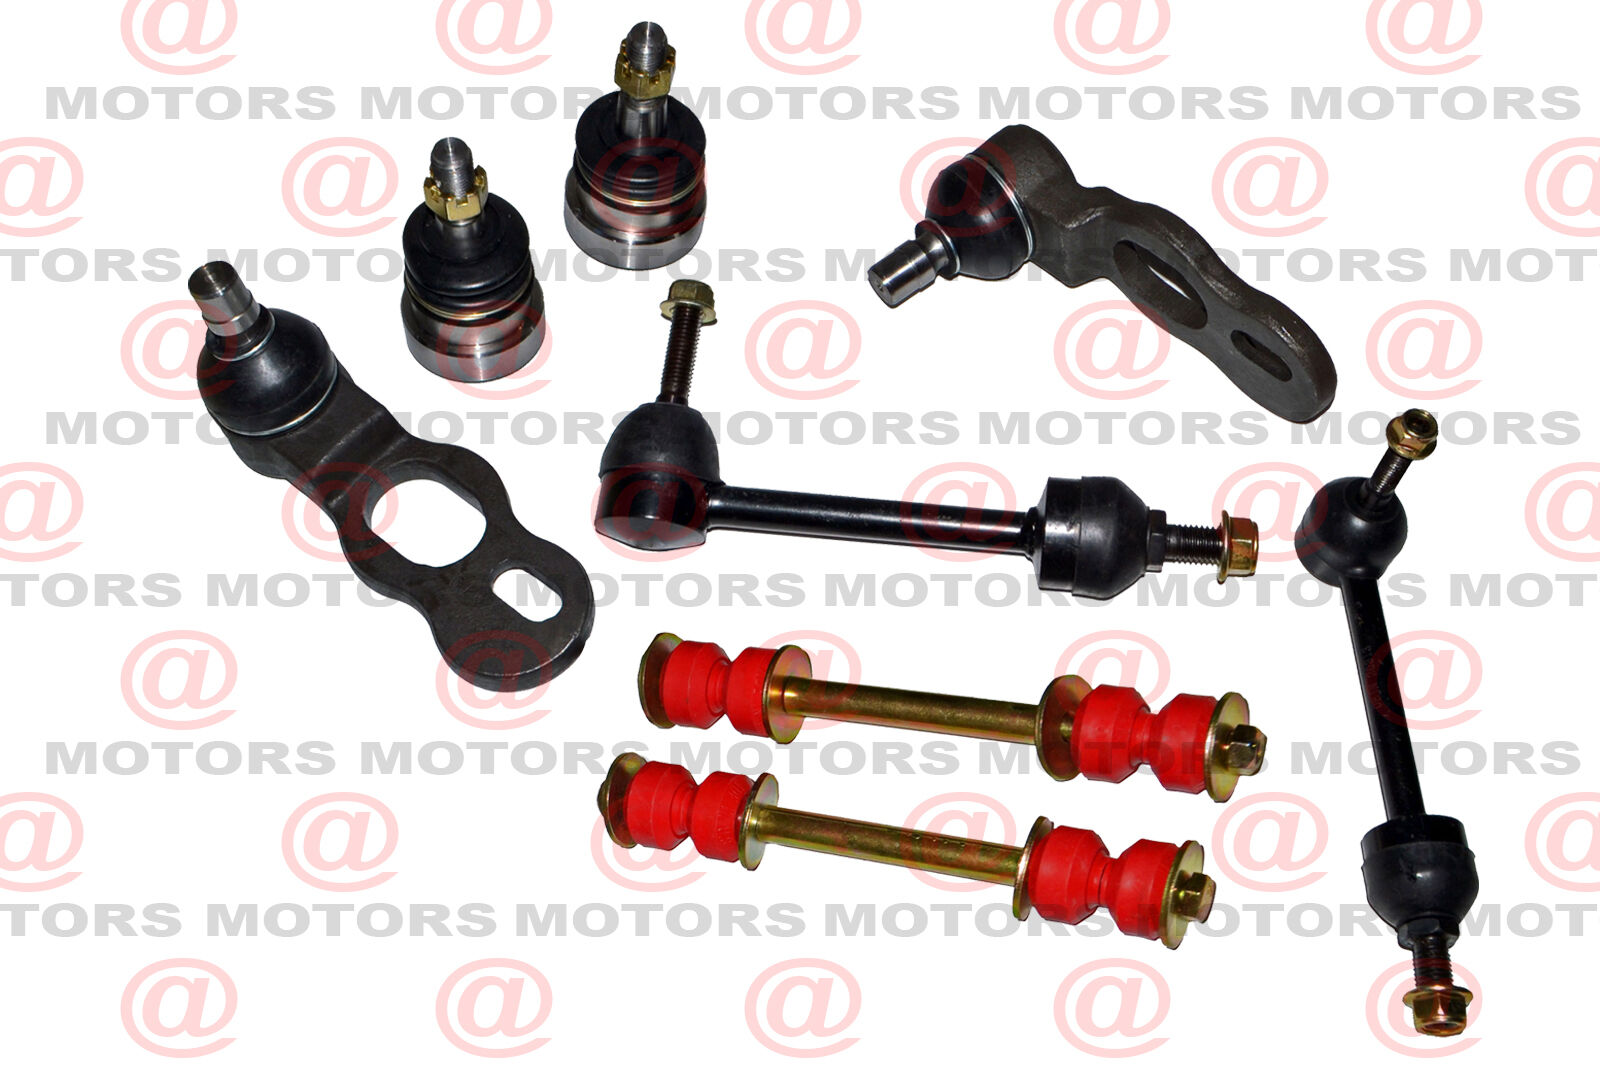 hight resolution of details about fits ford crown victoria 98 02 front lh rh upper lower ball joints sway bar link